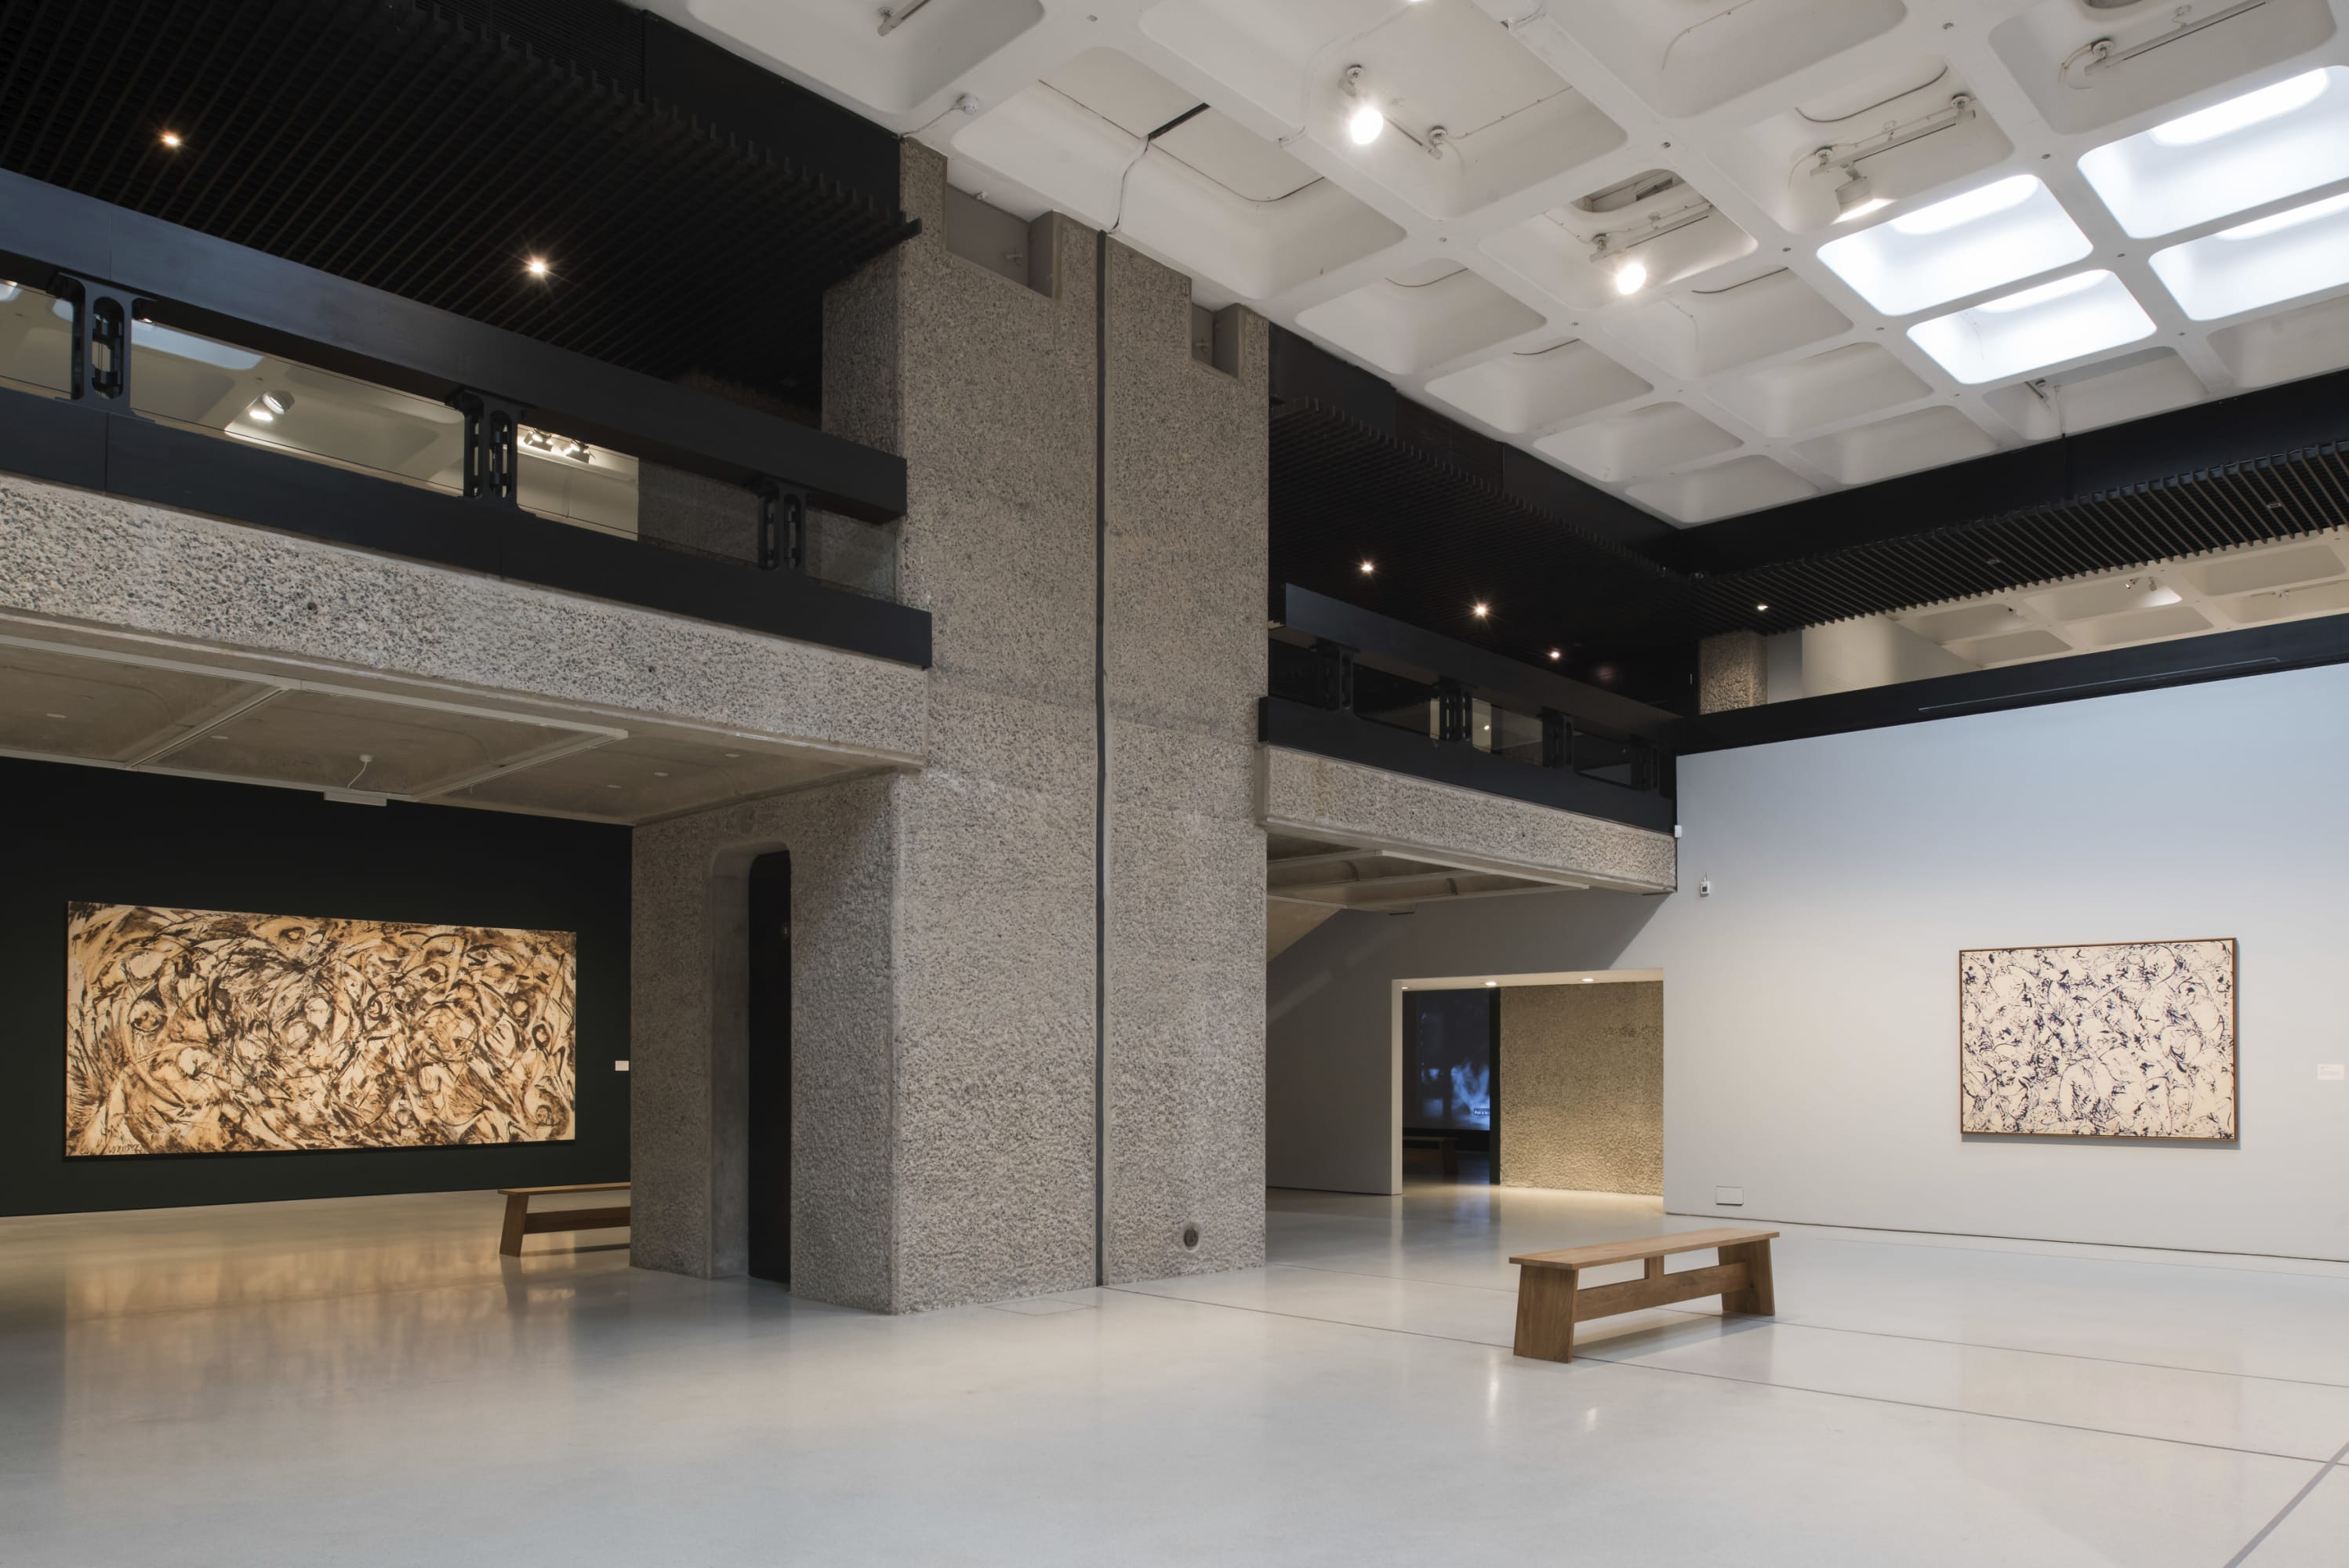 David Chipperfield Architects, Max Coulson · Lee Krasner